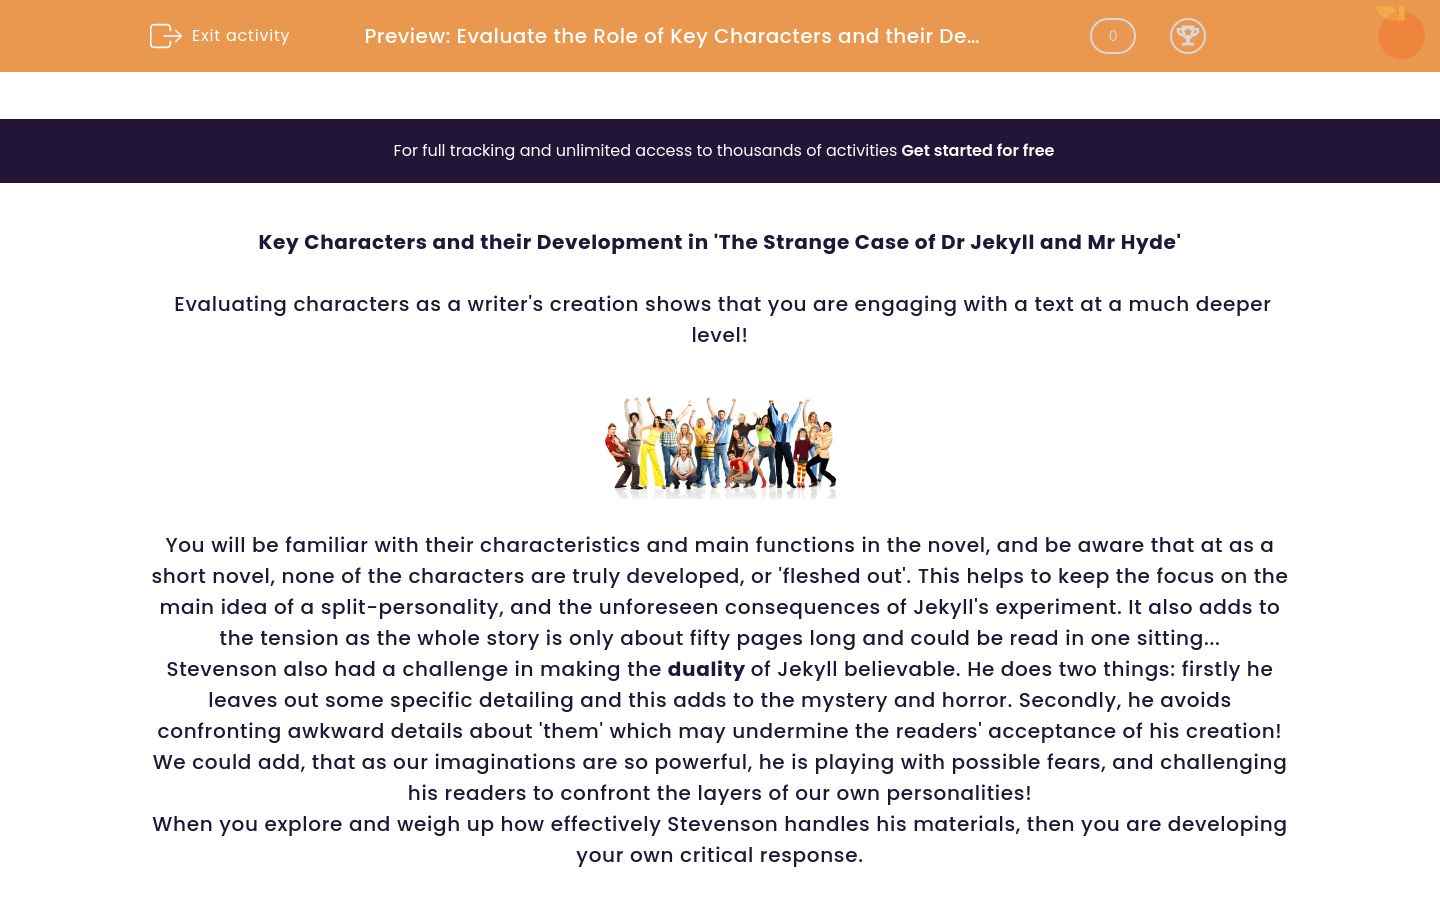 'Evaluate the Role of Key Characters and their Development in 'The Strange Case of Dr Jekyll and Mr Hyde'' worksheet